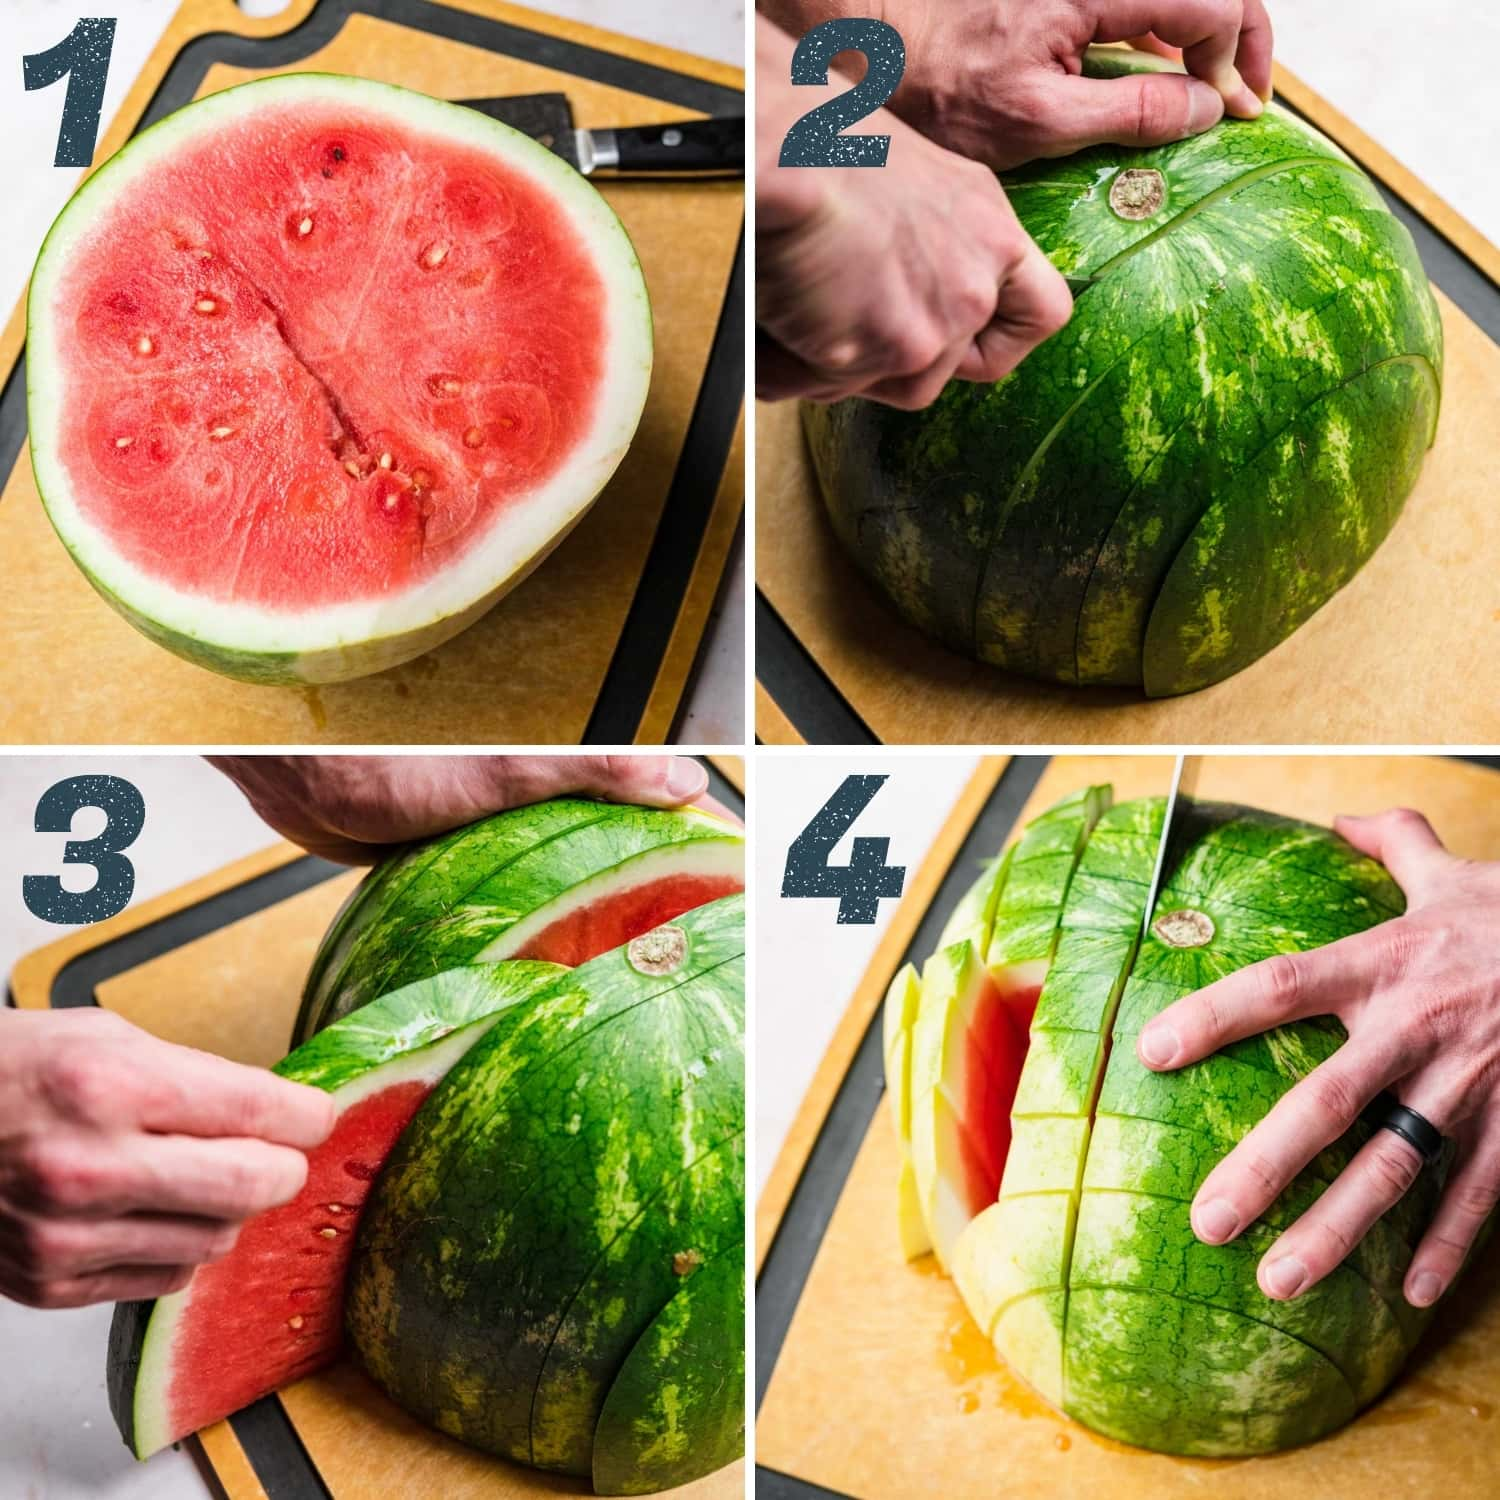 person slicing halved watermelon into cubes lengthwise and widthwise.